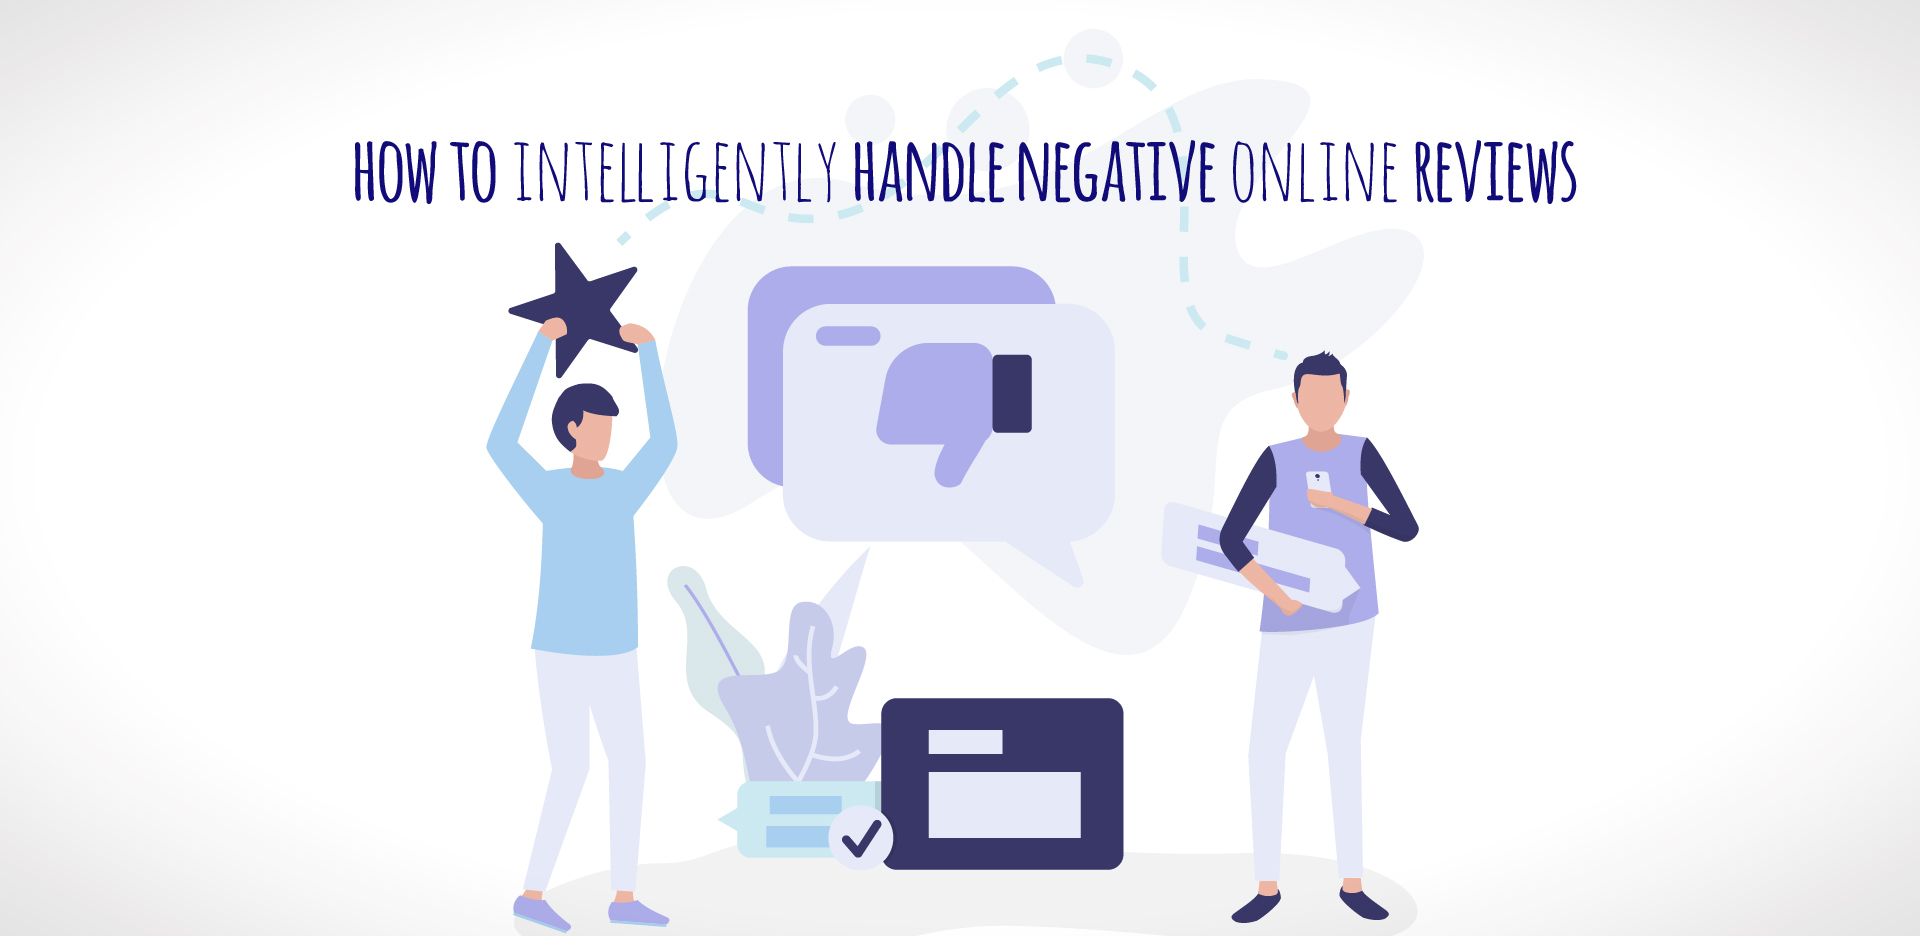 The ultimate guide on how to intelligently handle negative online reviews